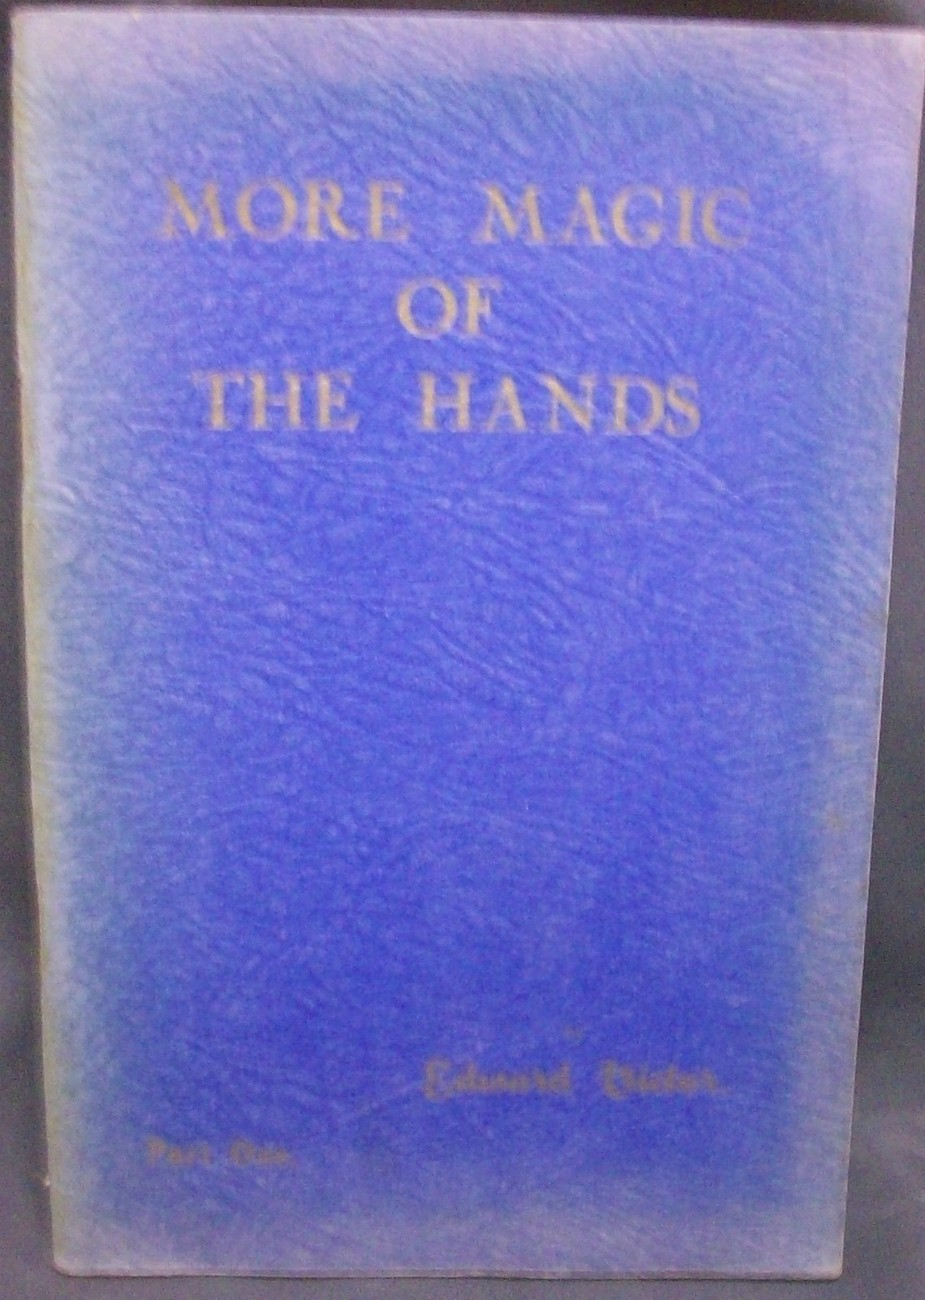 More Magic of the Hand by Victor, Edward